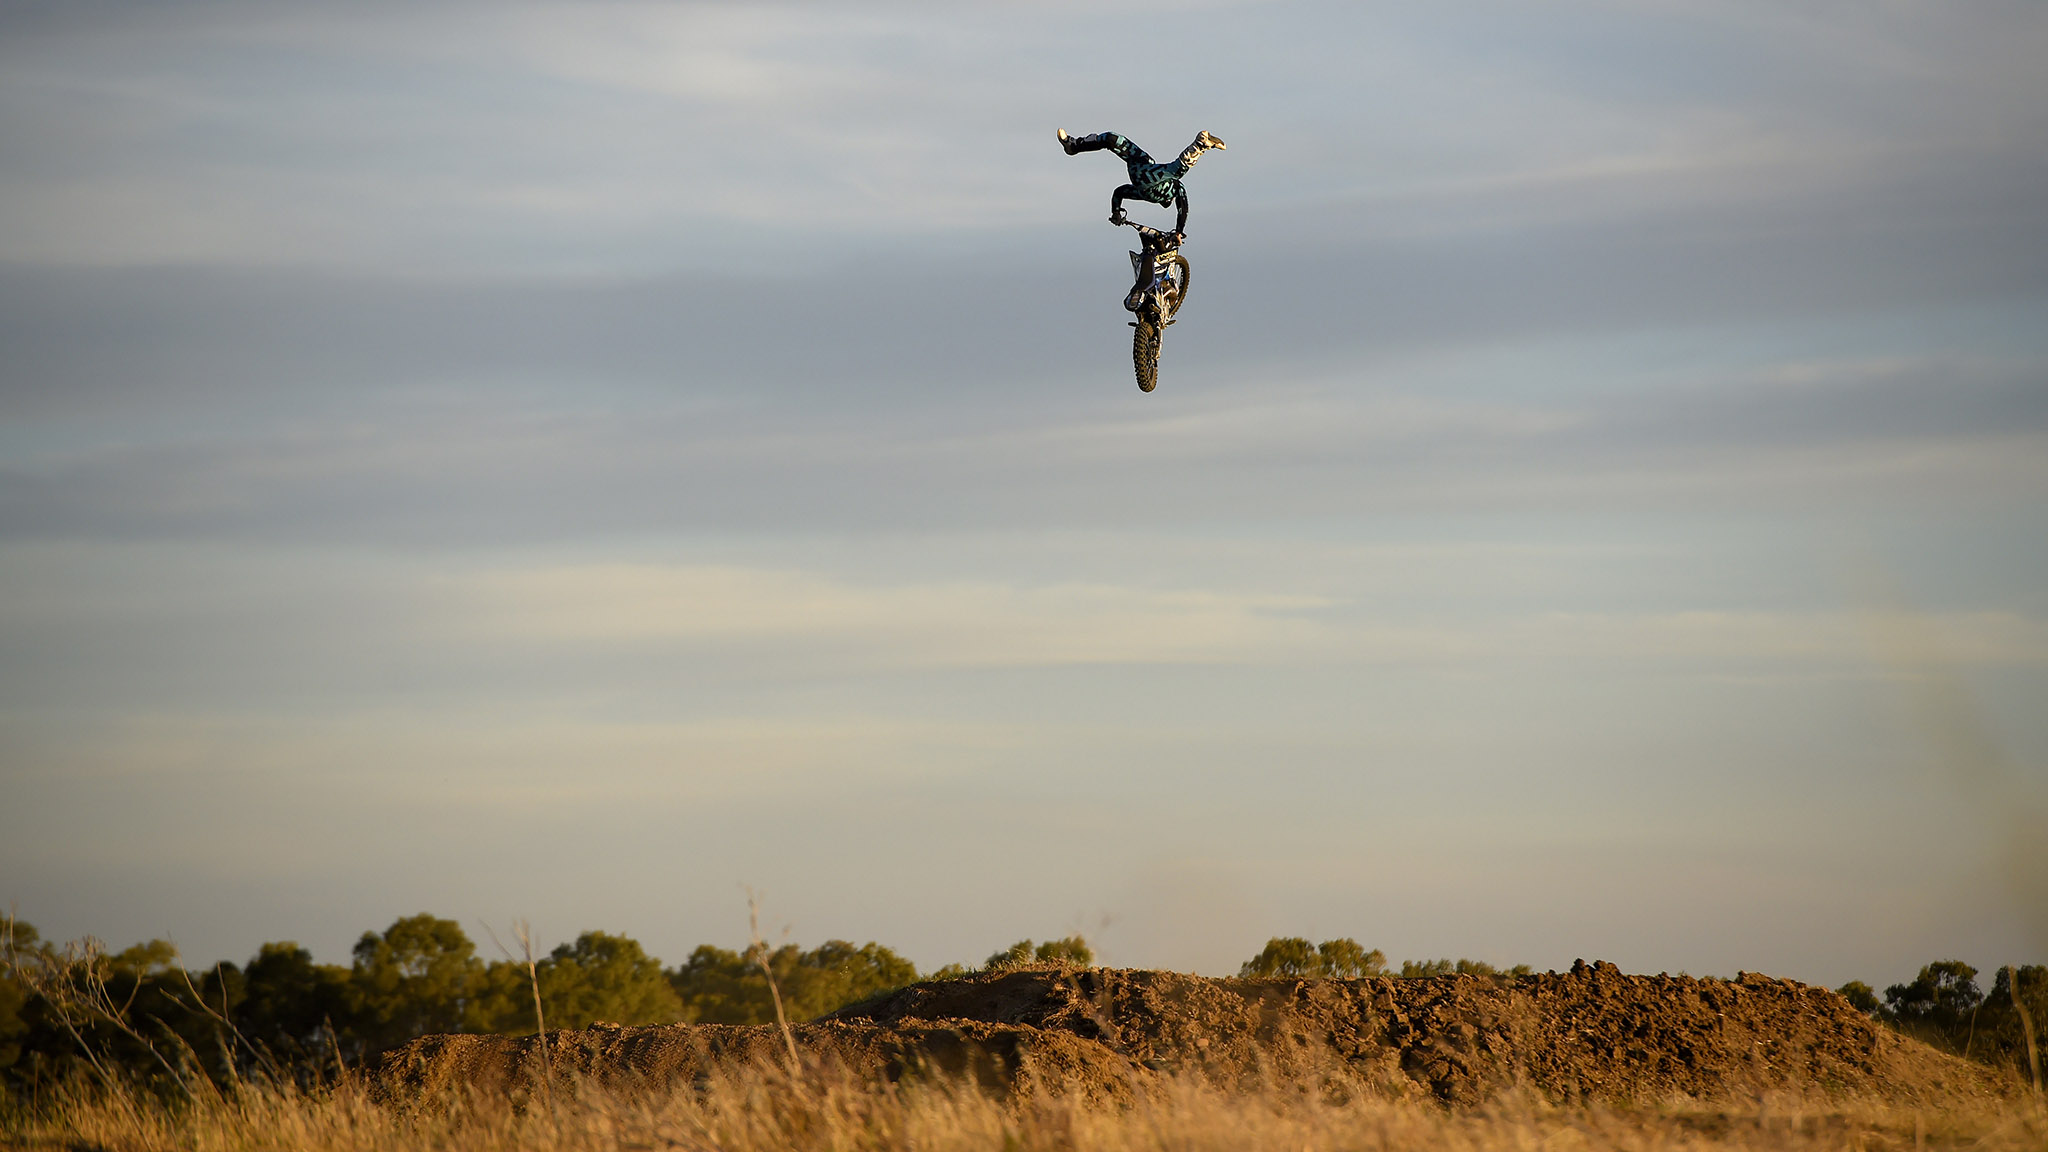 Skying over Moto X Dirt